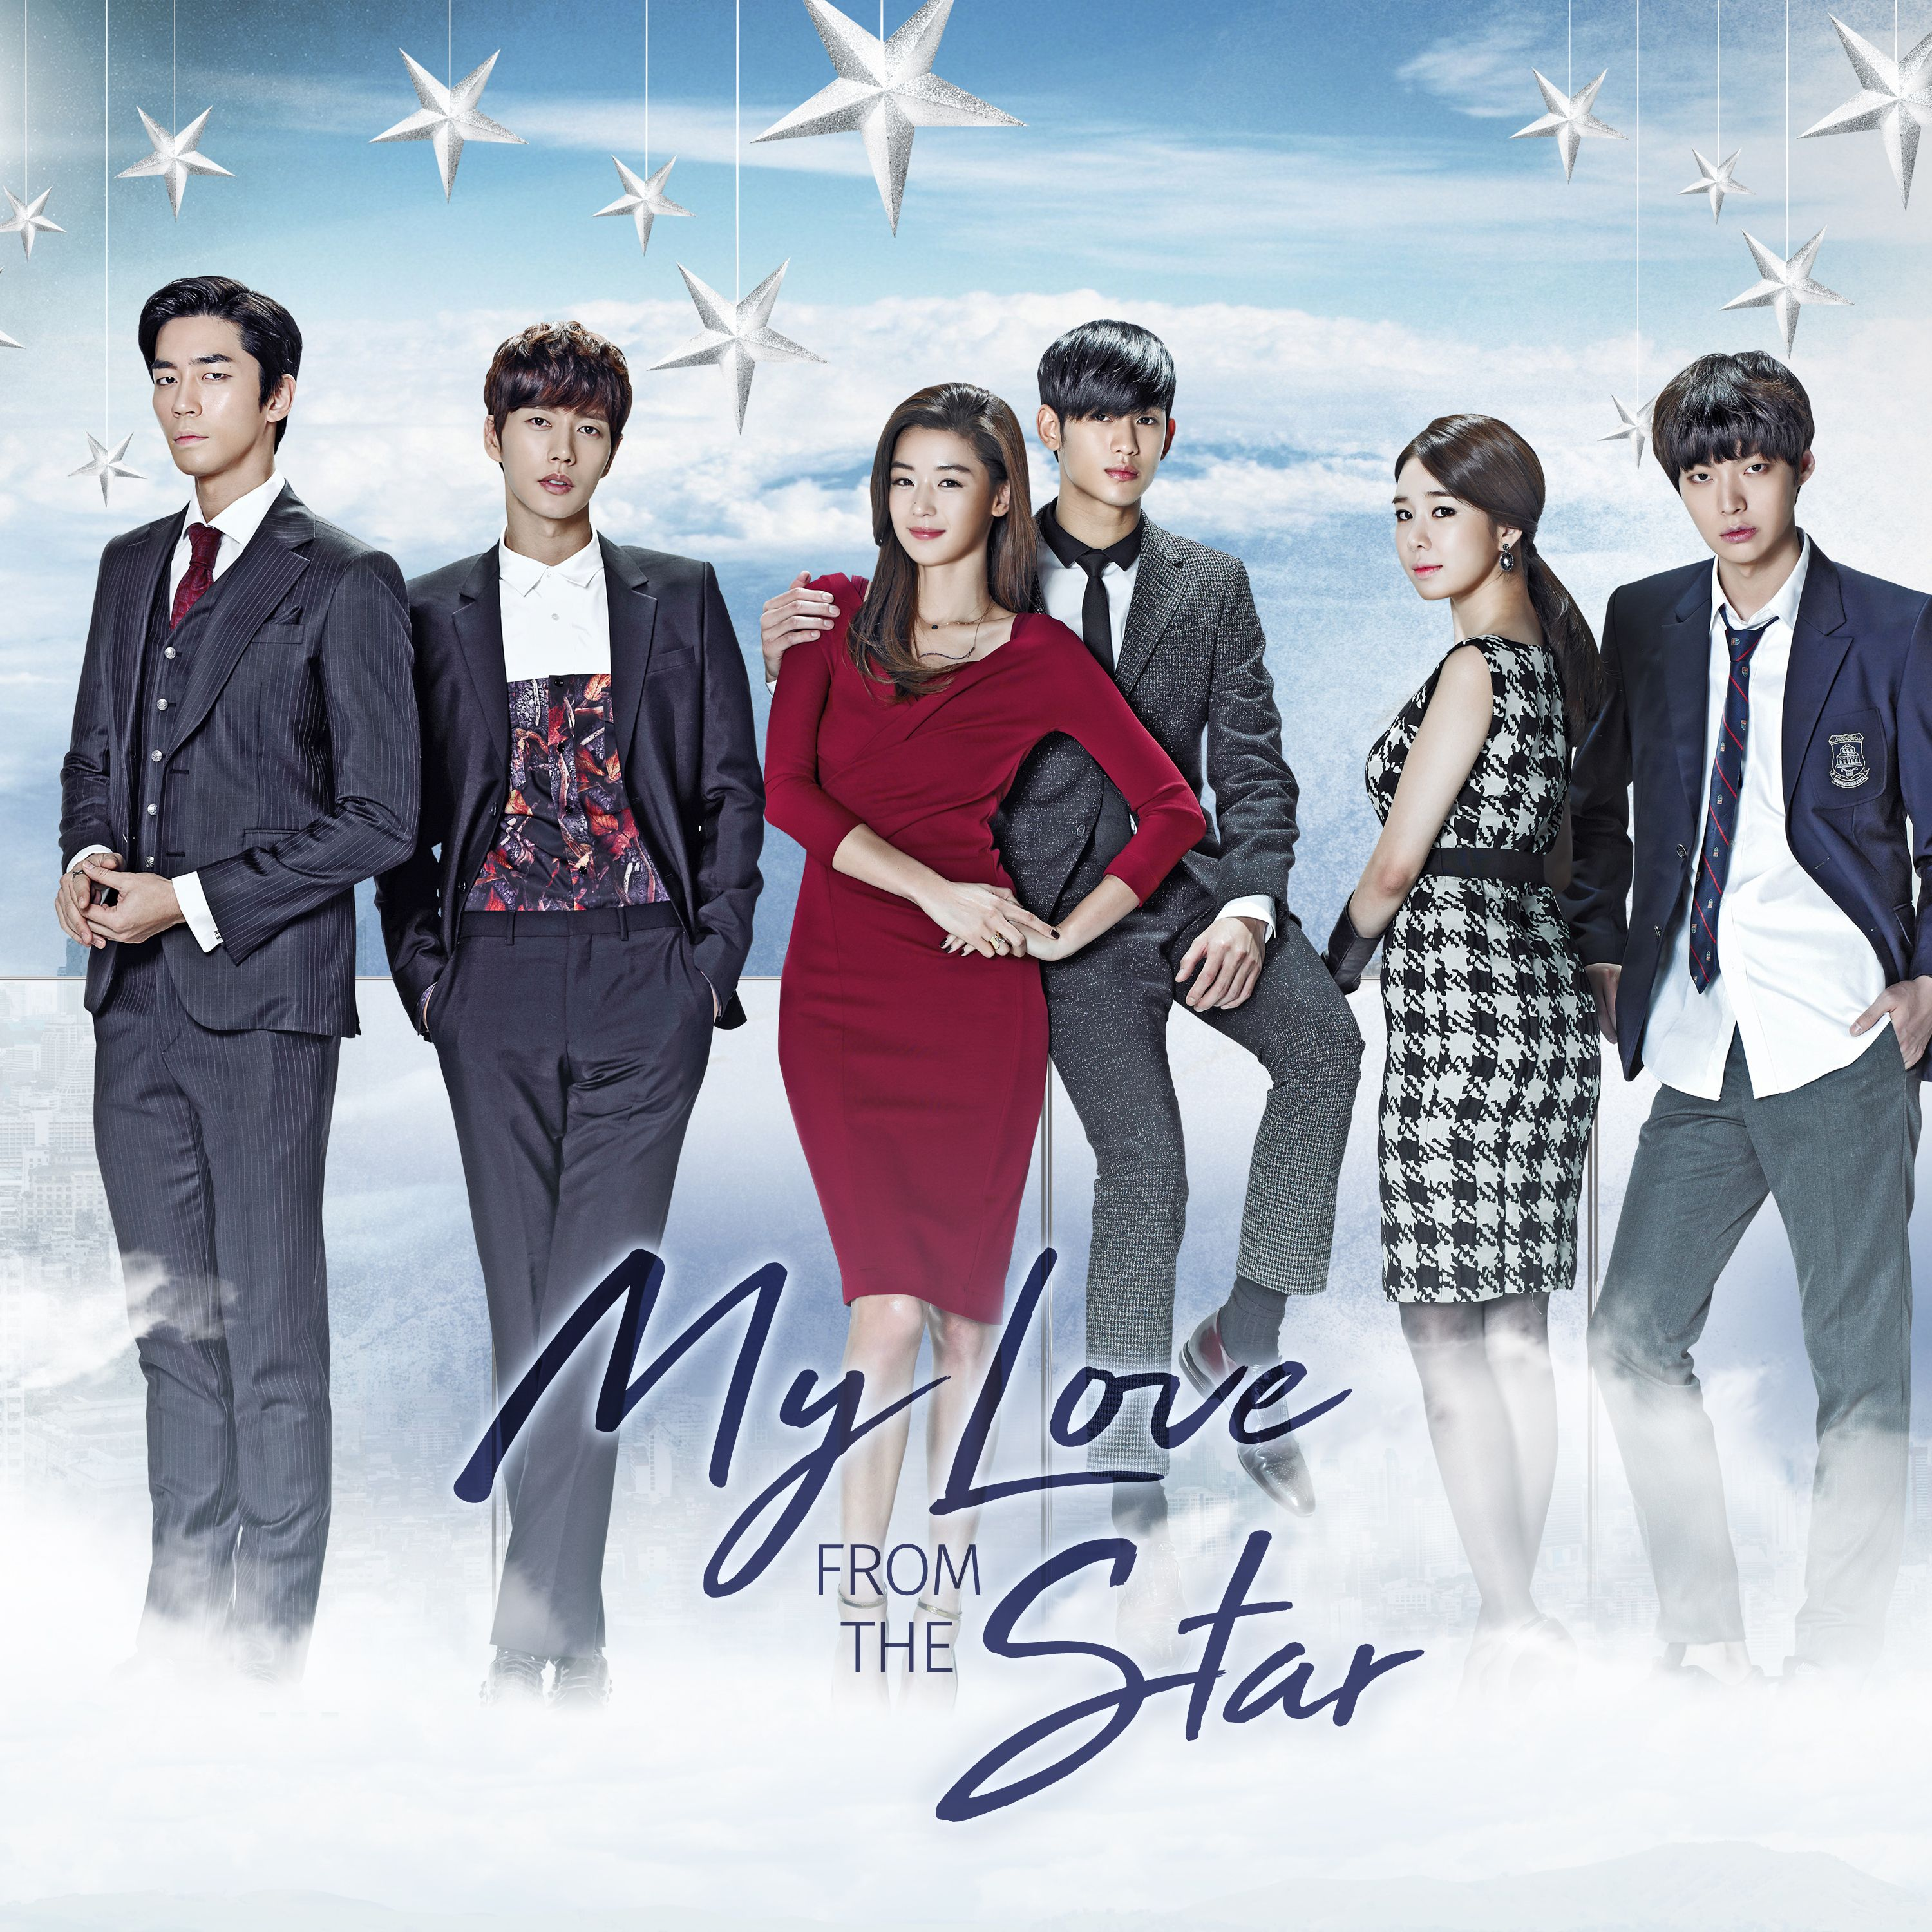 My Love From the Star Episode 2 - 별에서 온 그대 - Watch